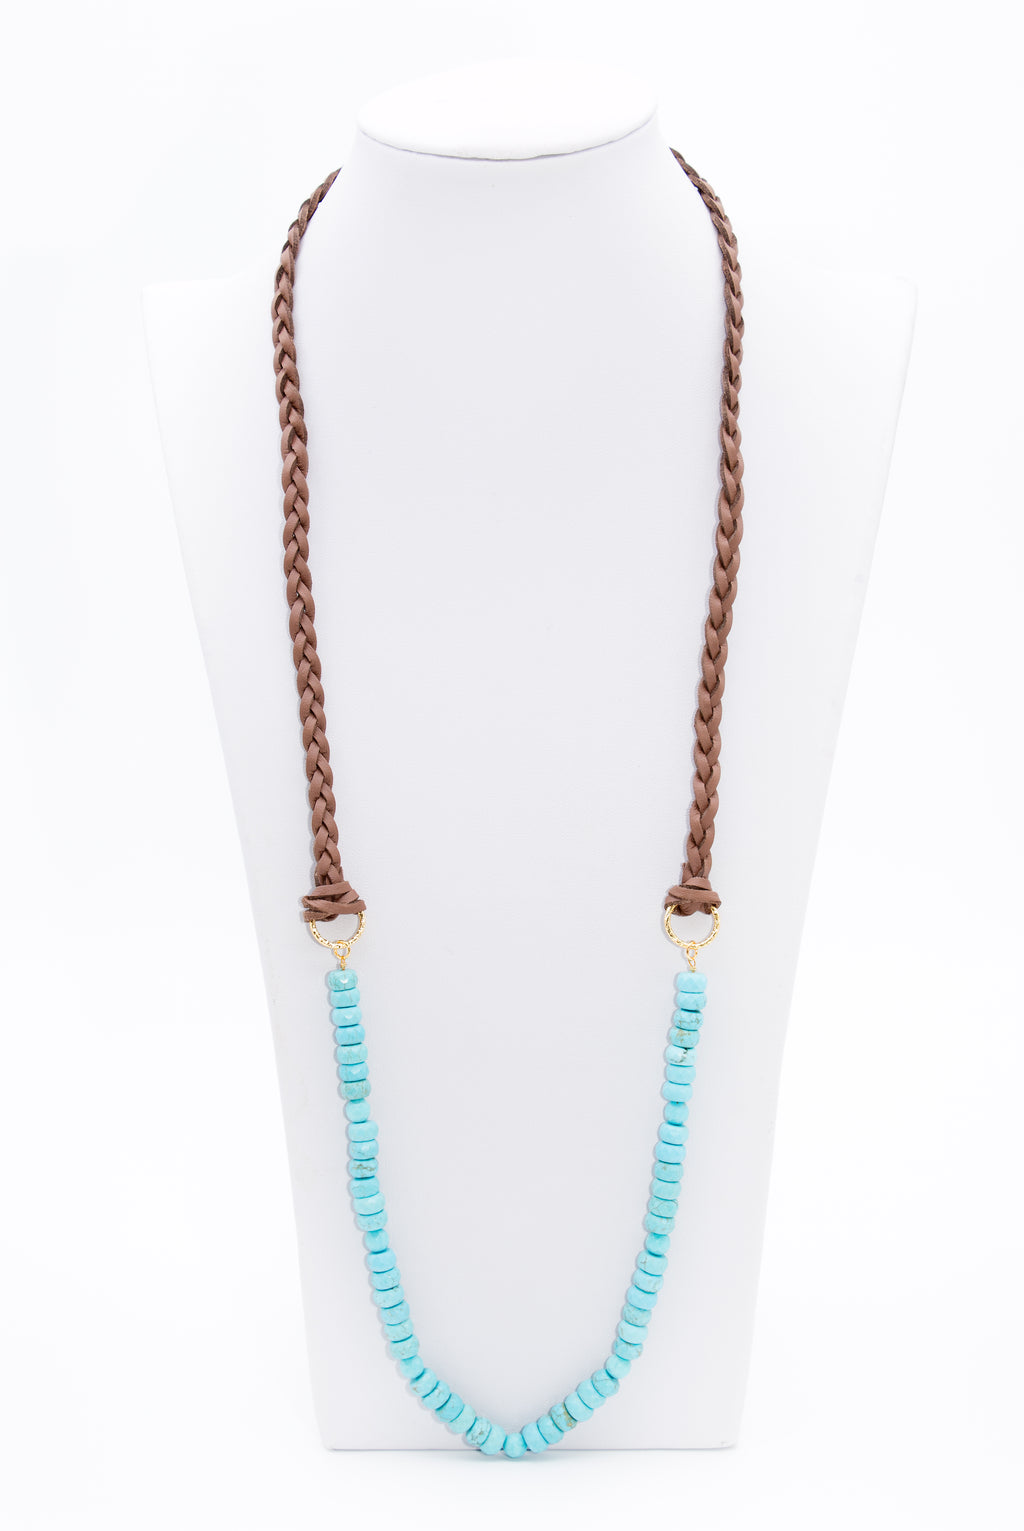 Long Braided Leather Turquoise Beaded Necklace - Filosophy